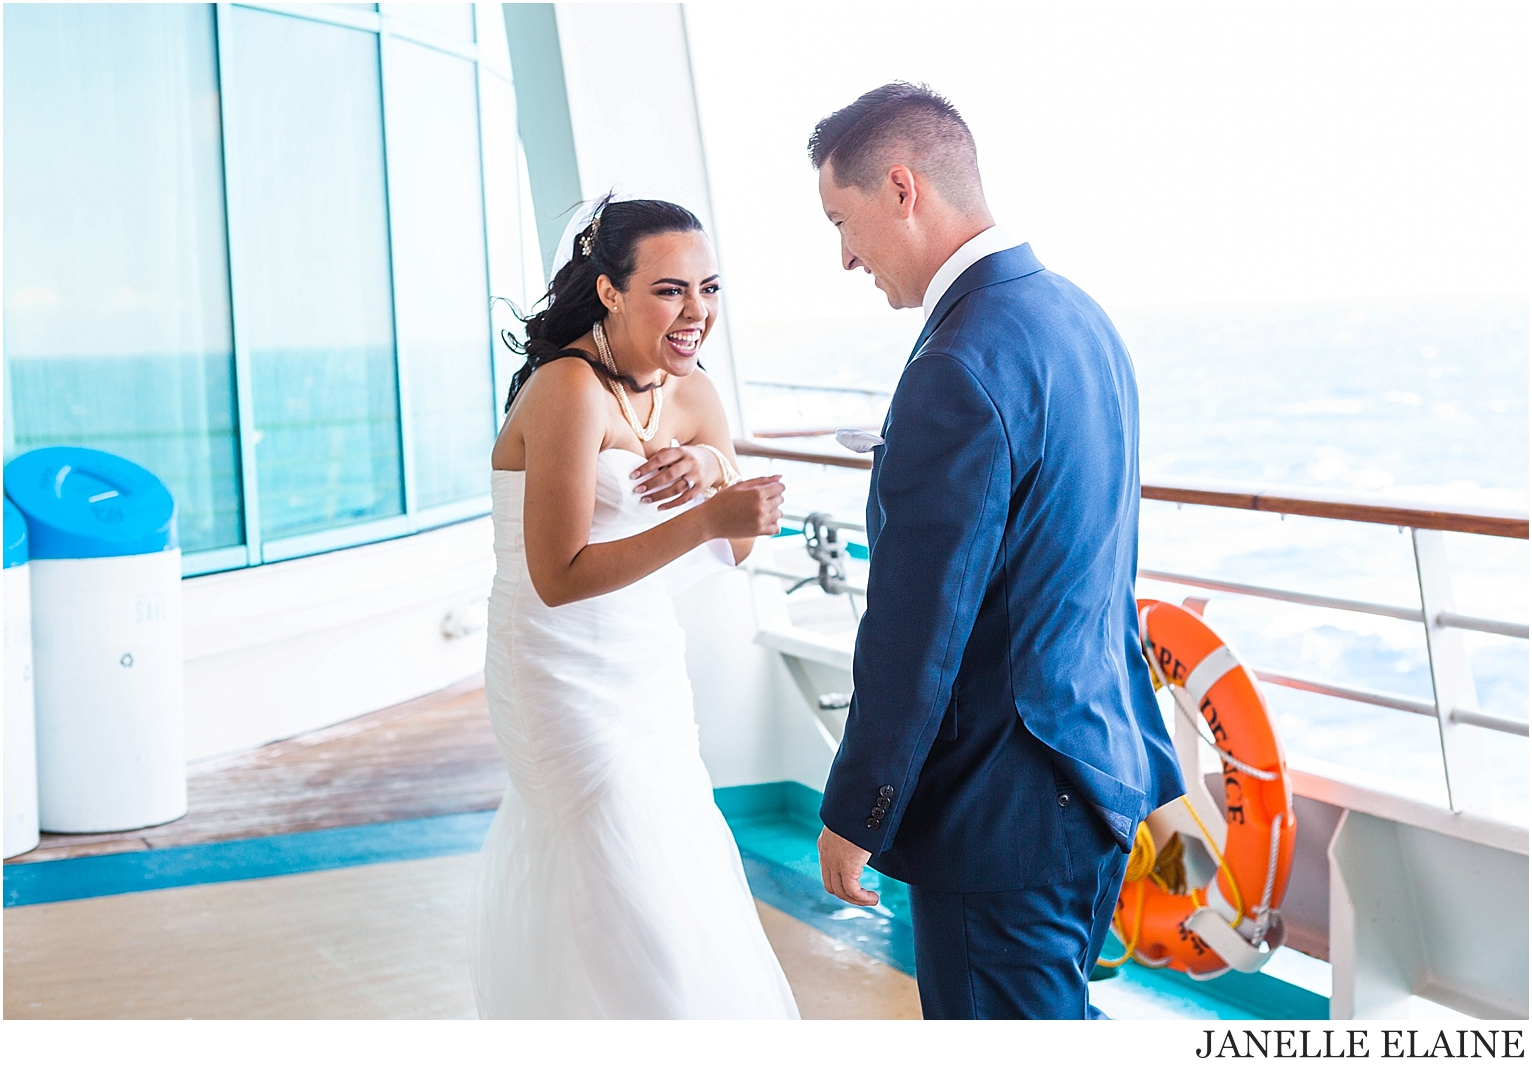 white wedding-royal caribbean-janelle elaine photography-154.jpg